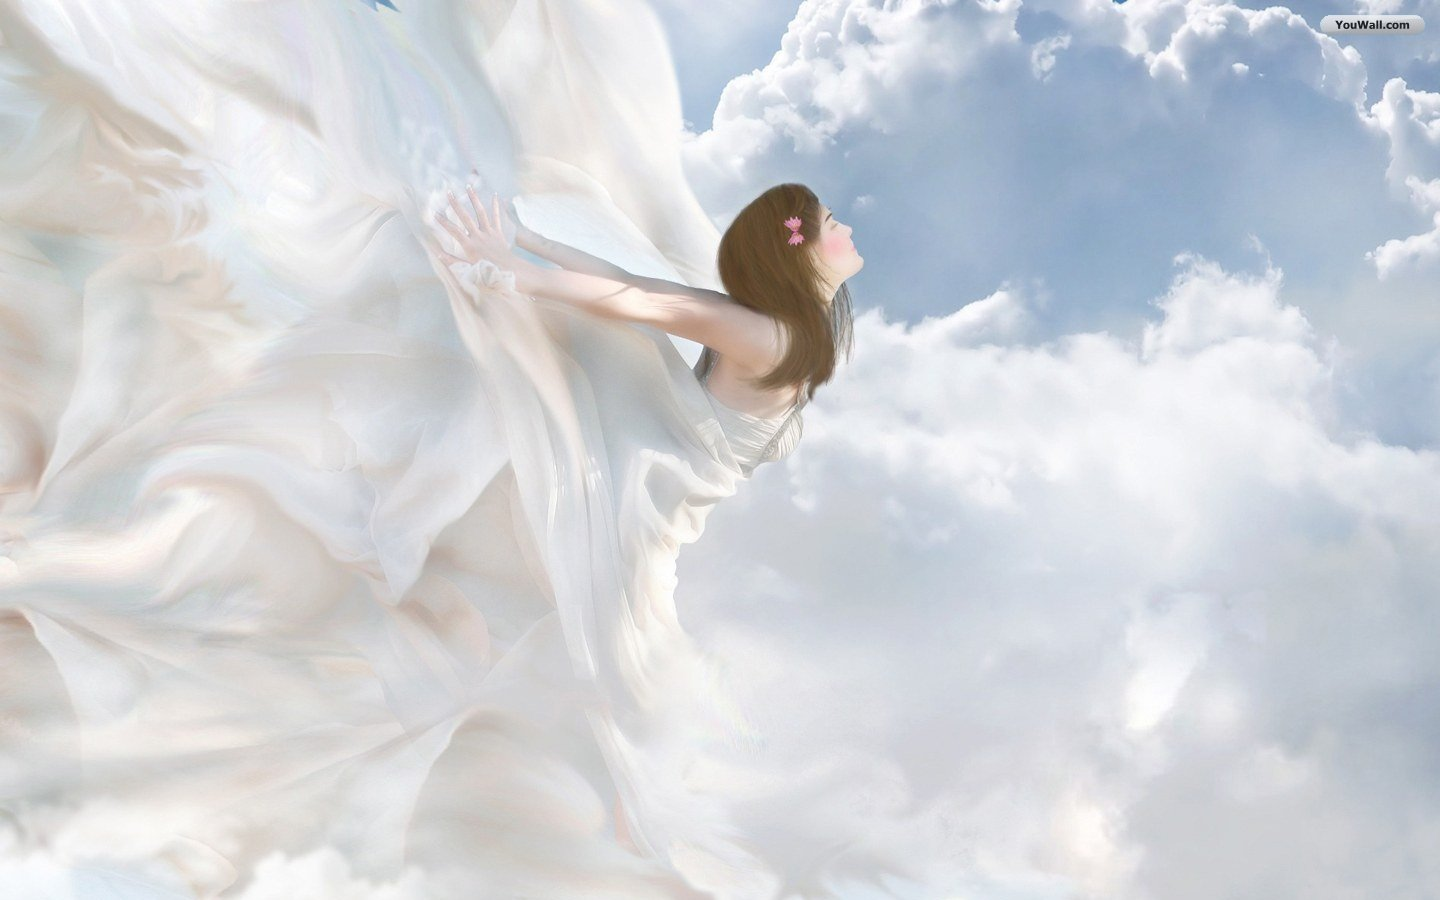 http://4.bp.blogspot.com/-Gtz3DNvuTVw/Twu4zS4k-ZI/AAAAAAAAAIY/G8Mm_pu087I/s1600/flying_angel_wallpaper_cd368.jpg